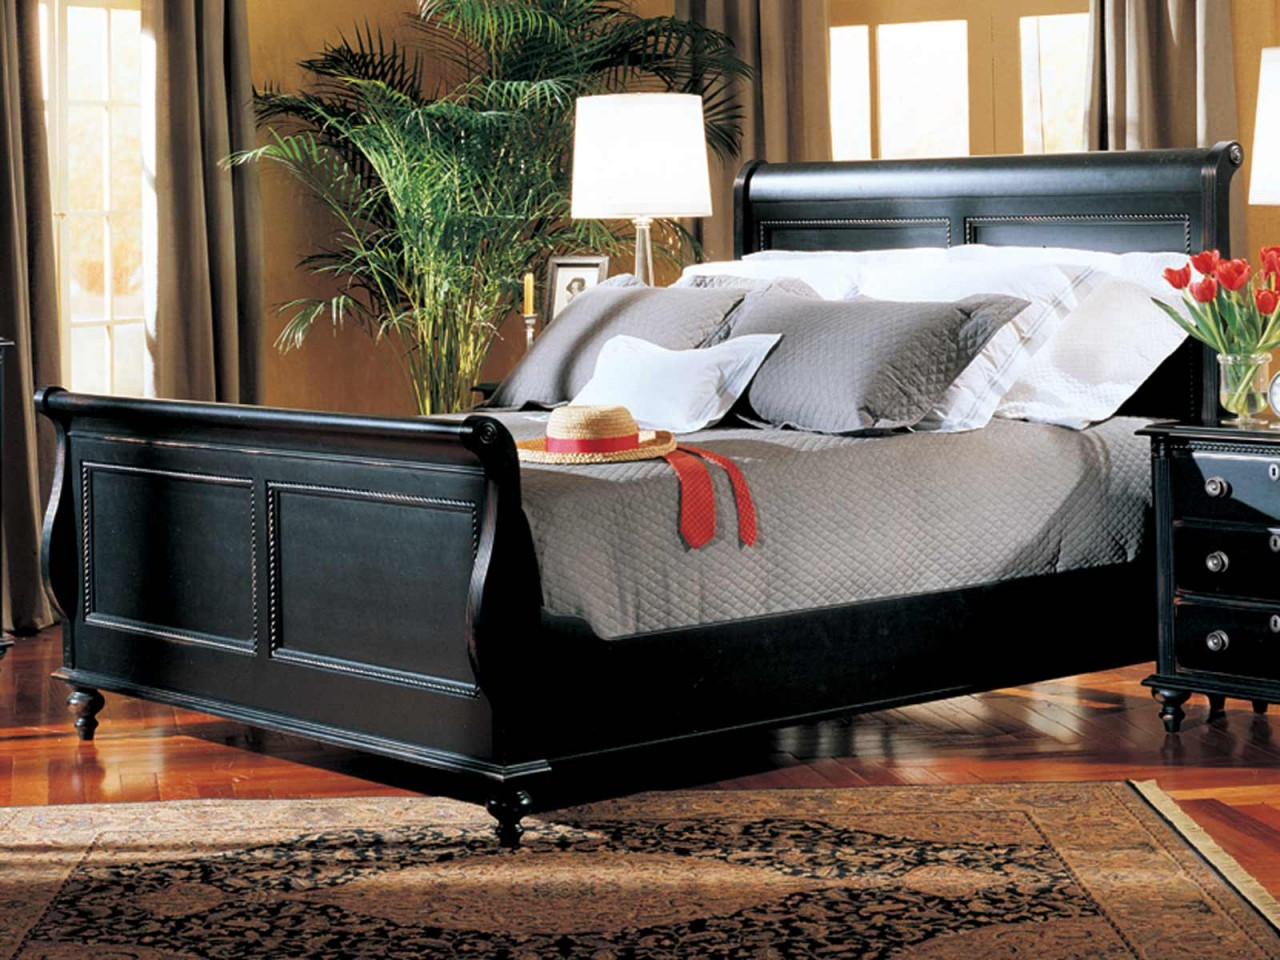 Breathtaking headboars king sleigh bed with royal duvet cover and luxury sheets also unique area rug above laminate flooring ideas